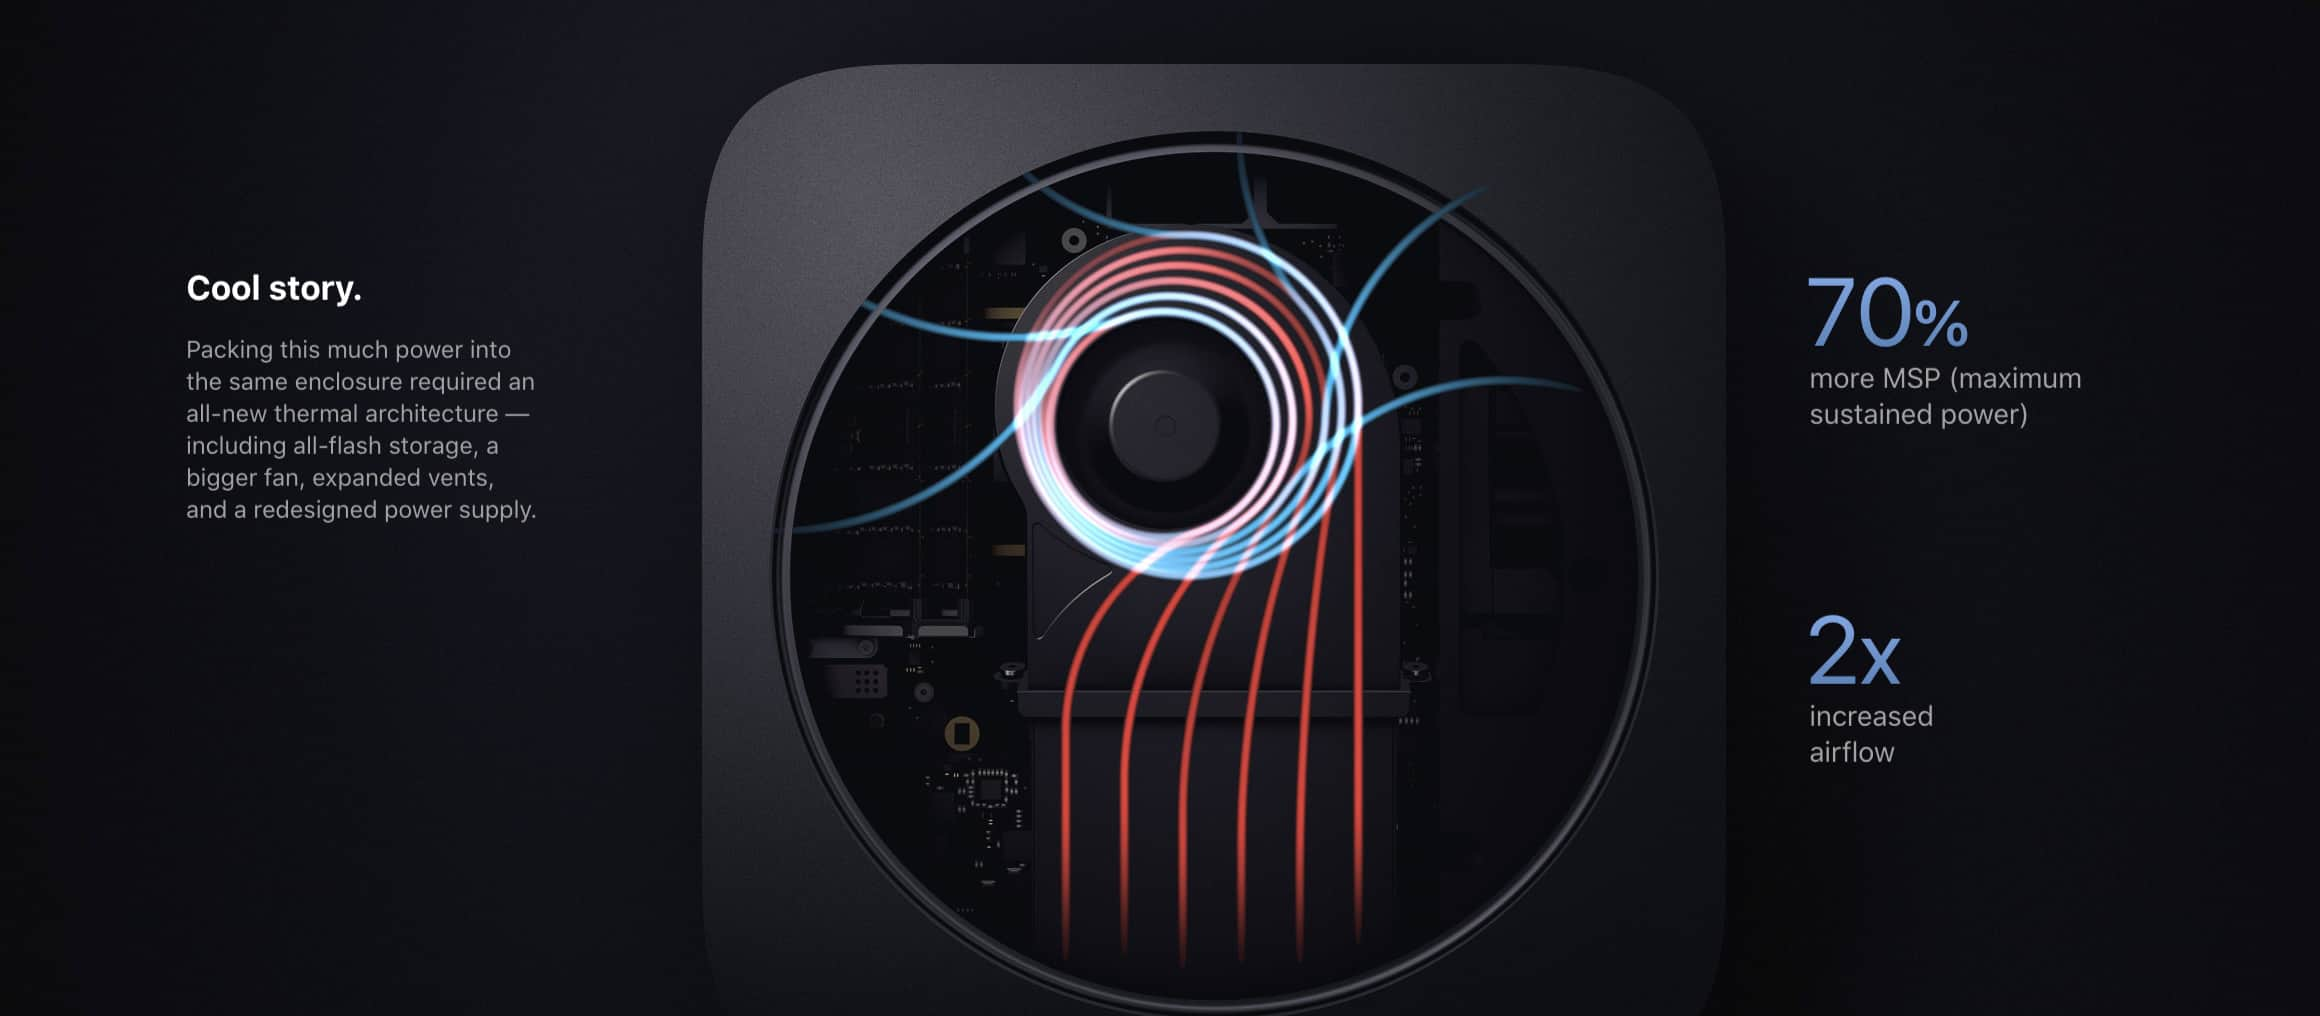 tan_nhiet_mac_mini_2020_laptopvang